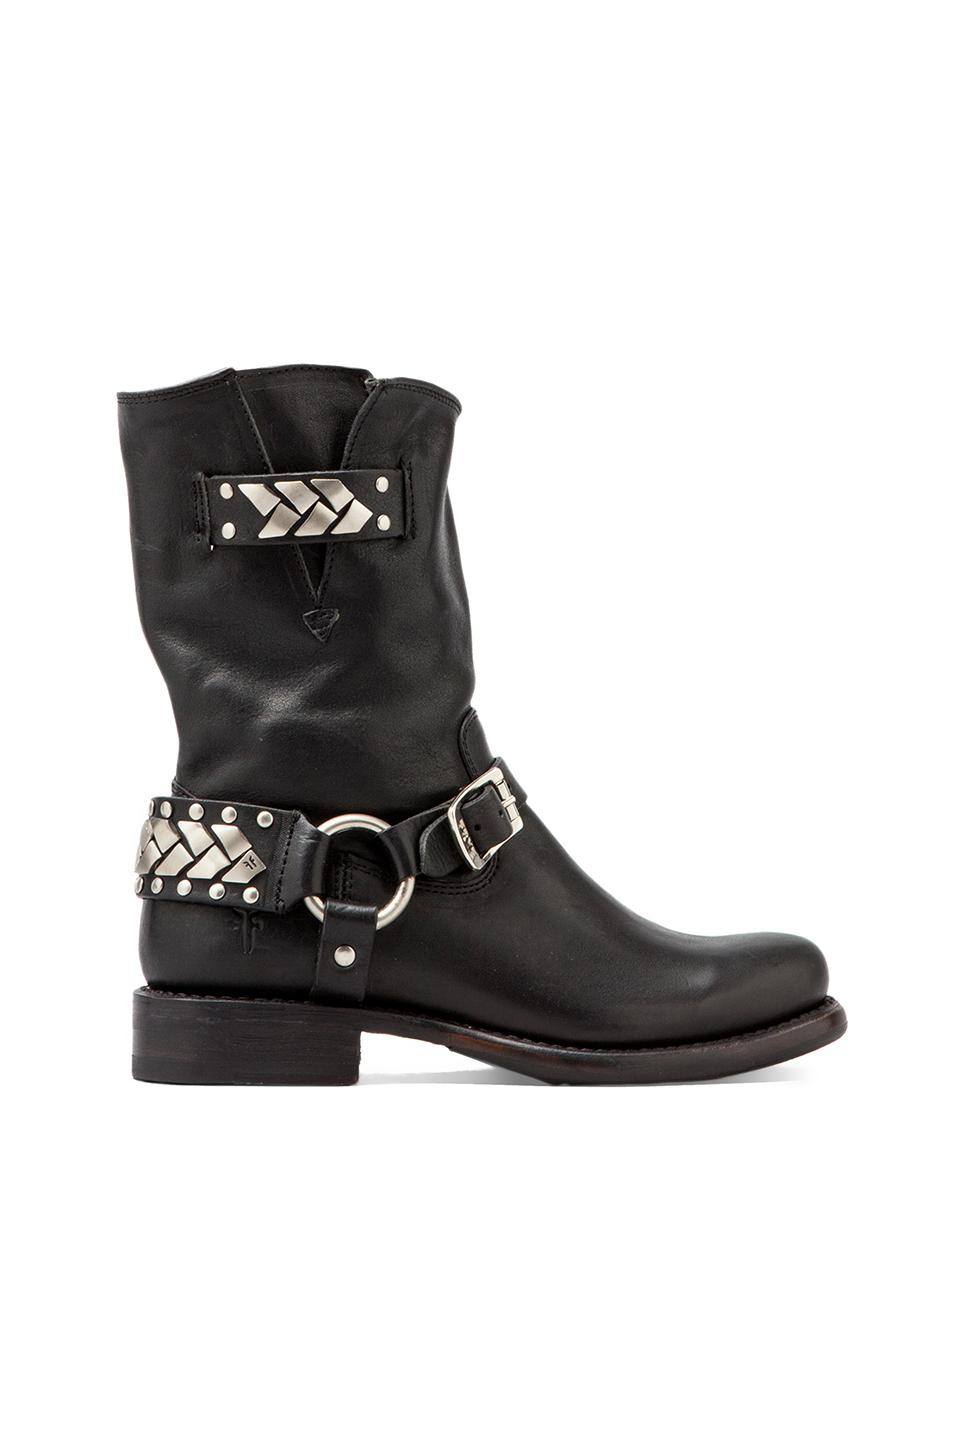 Frye Jenna Braid Stud Short Boot in Black